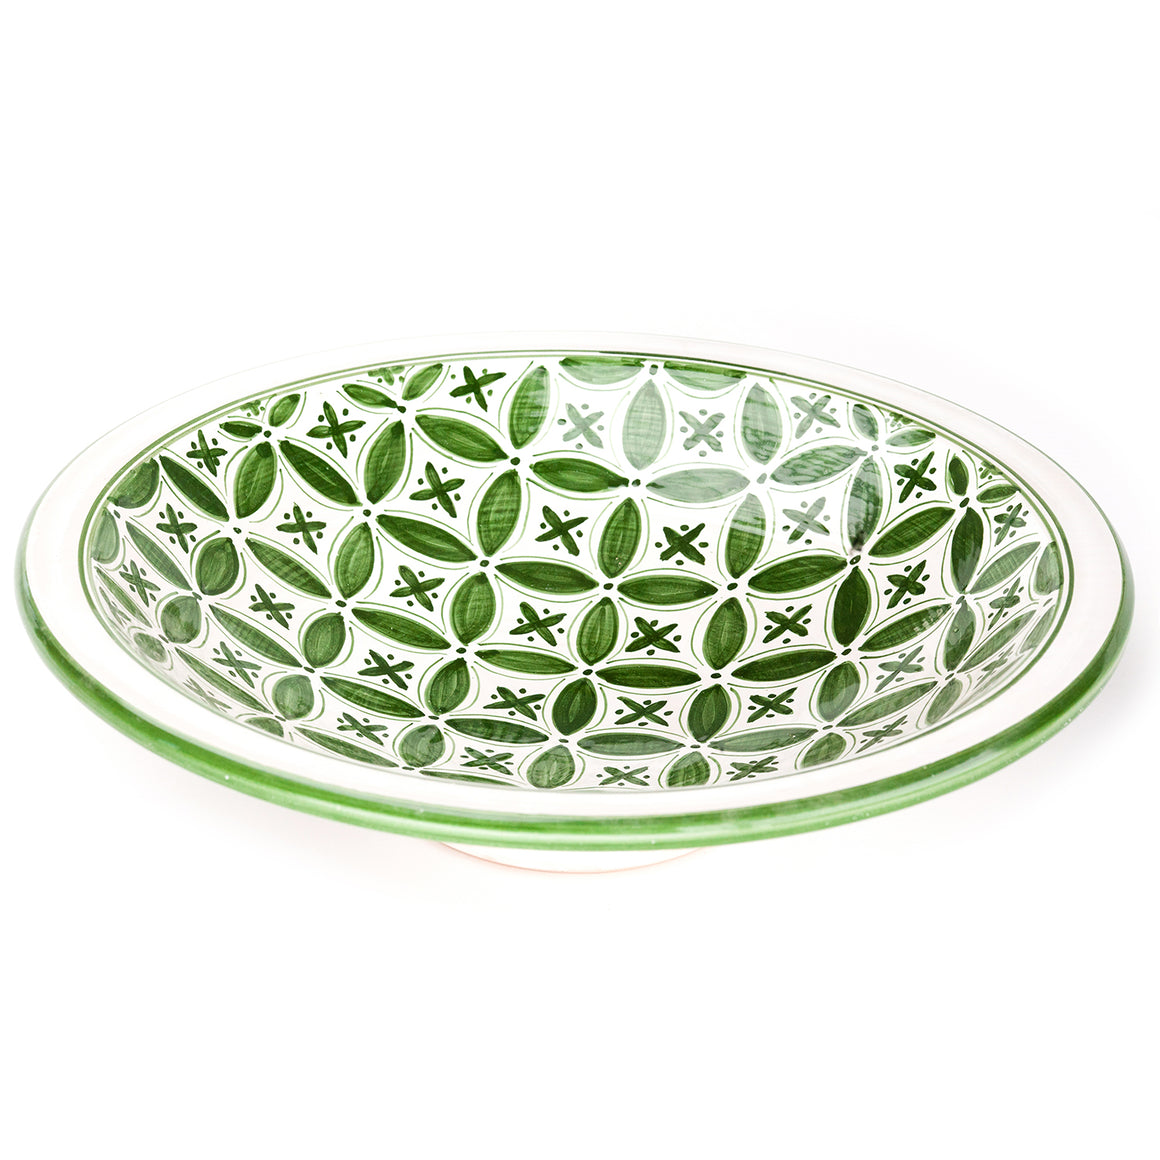 Green Fez Large Serve Bowl